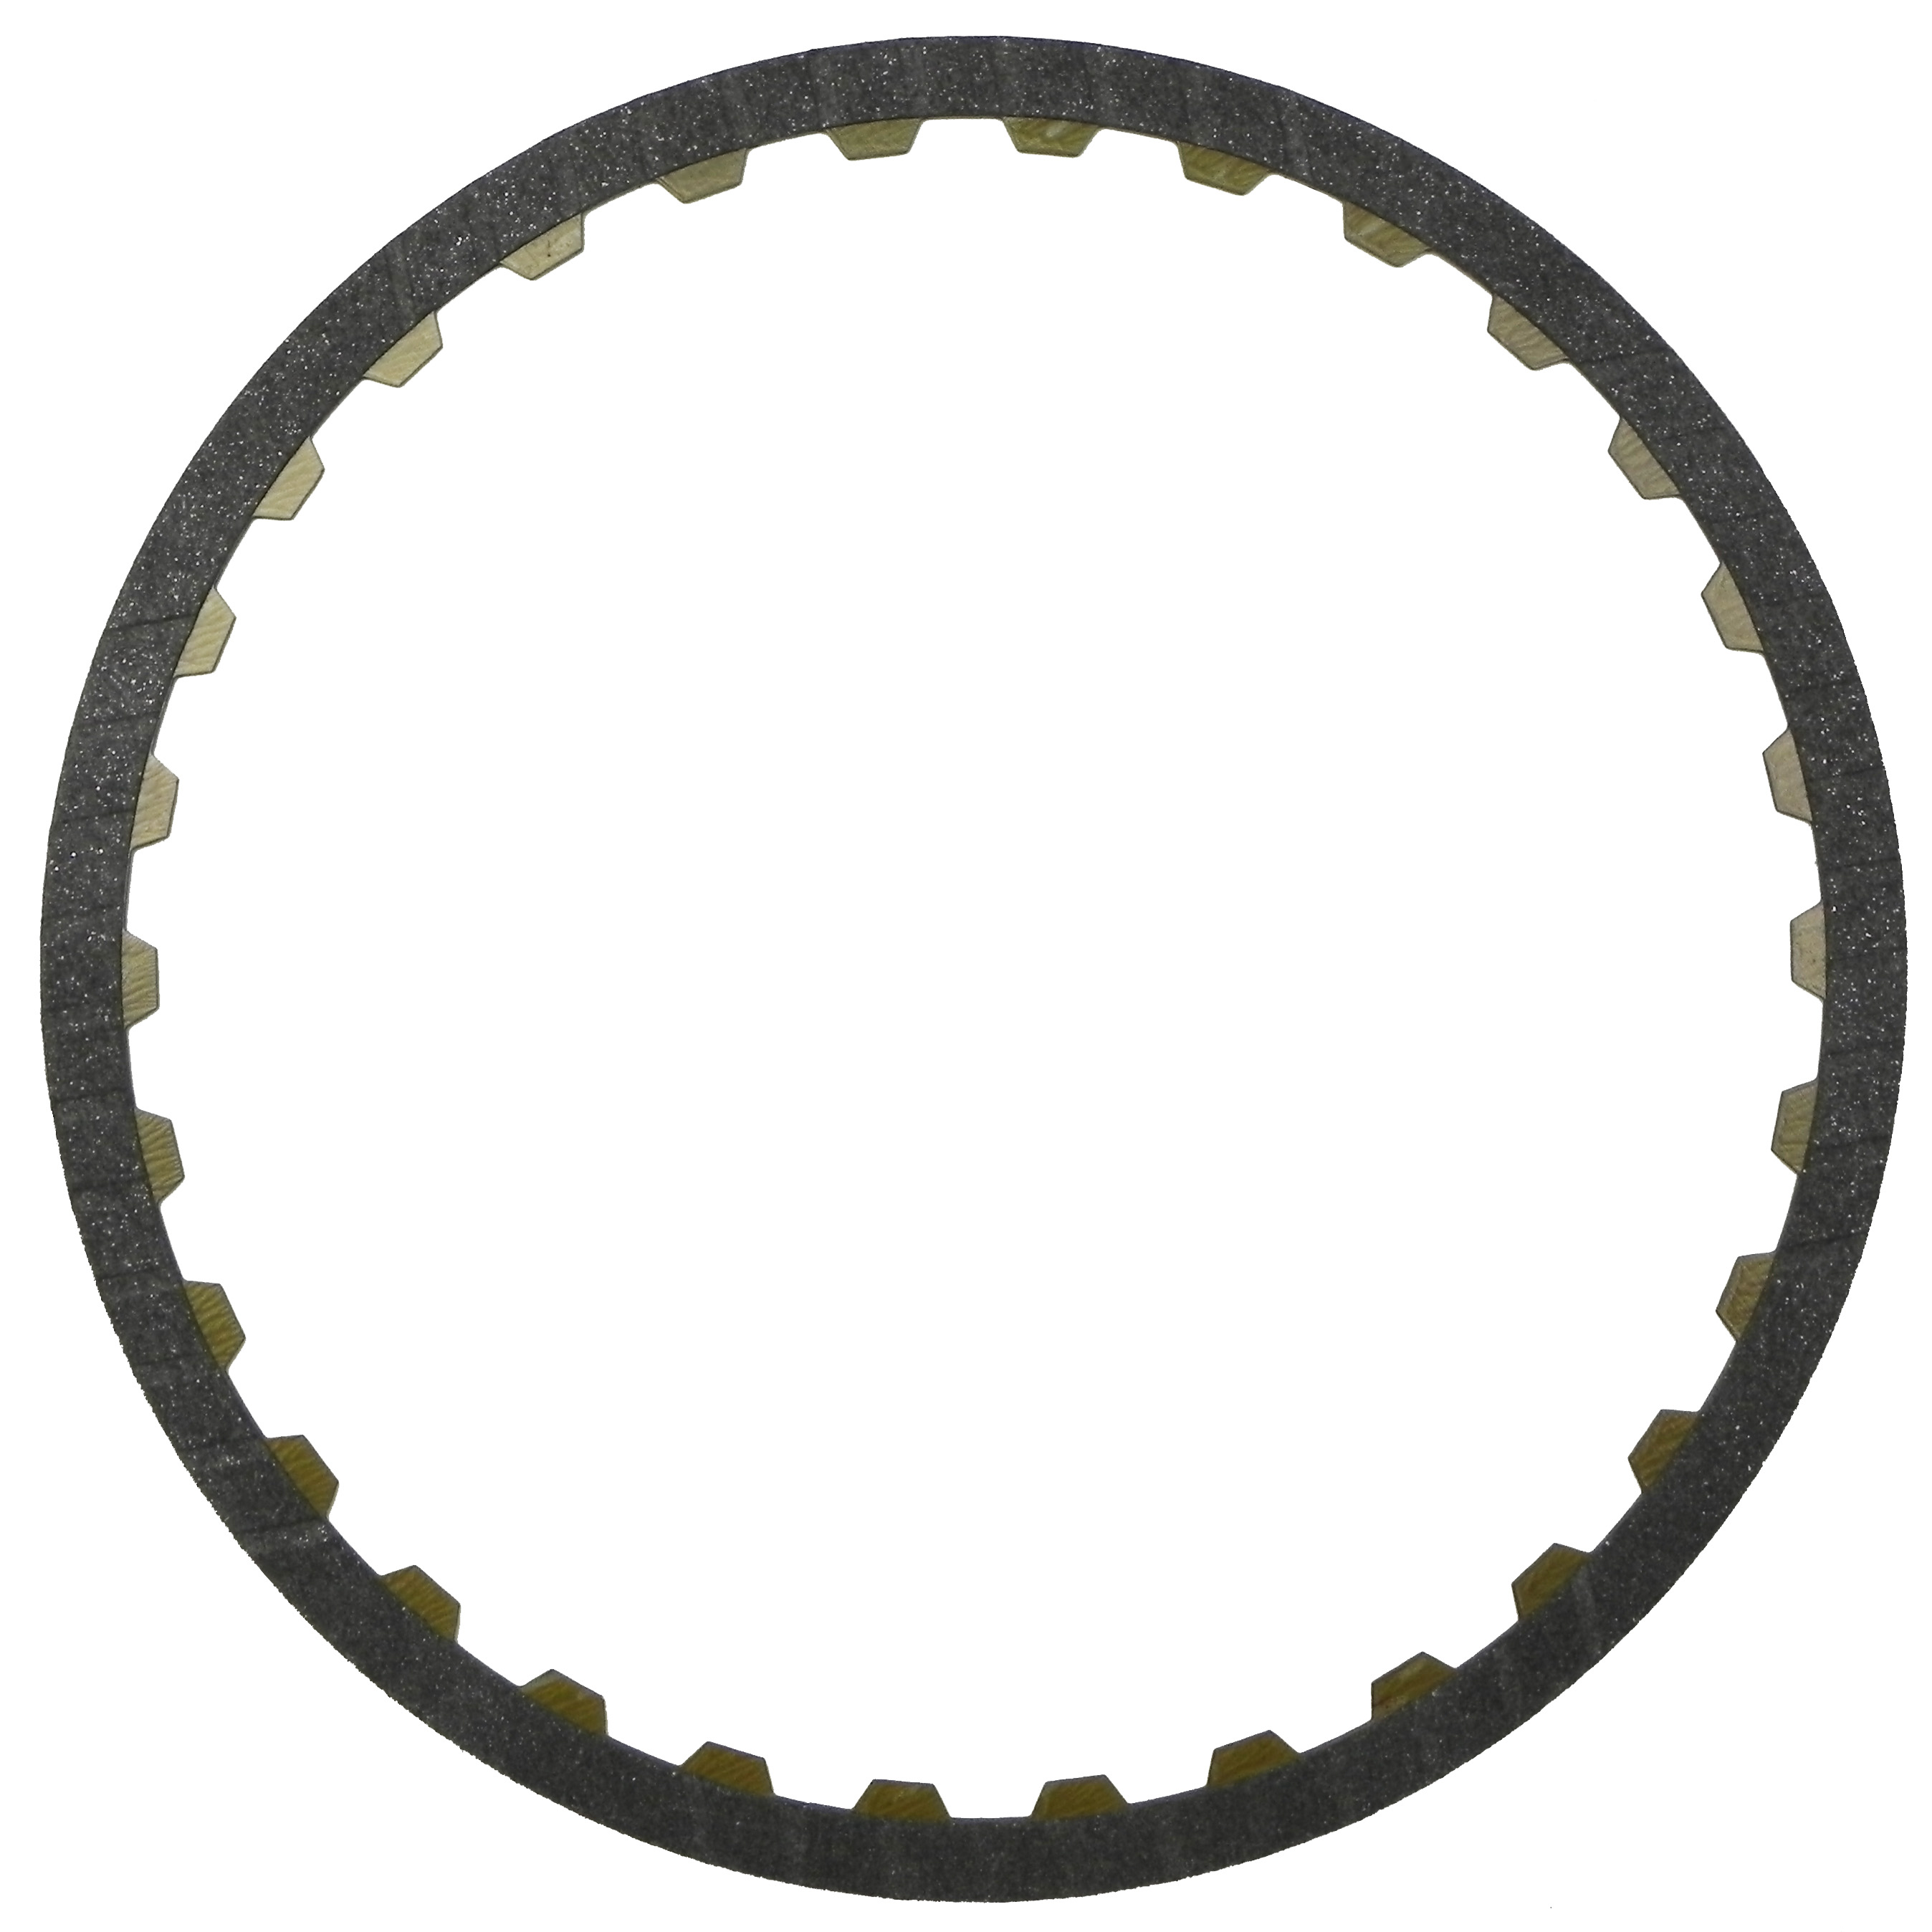 R565110 | 1997-2009 Friction Clutch Plate High Energy Reverse Clutch, Double Sided High Energy